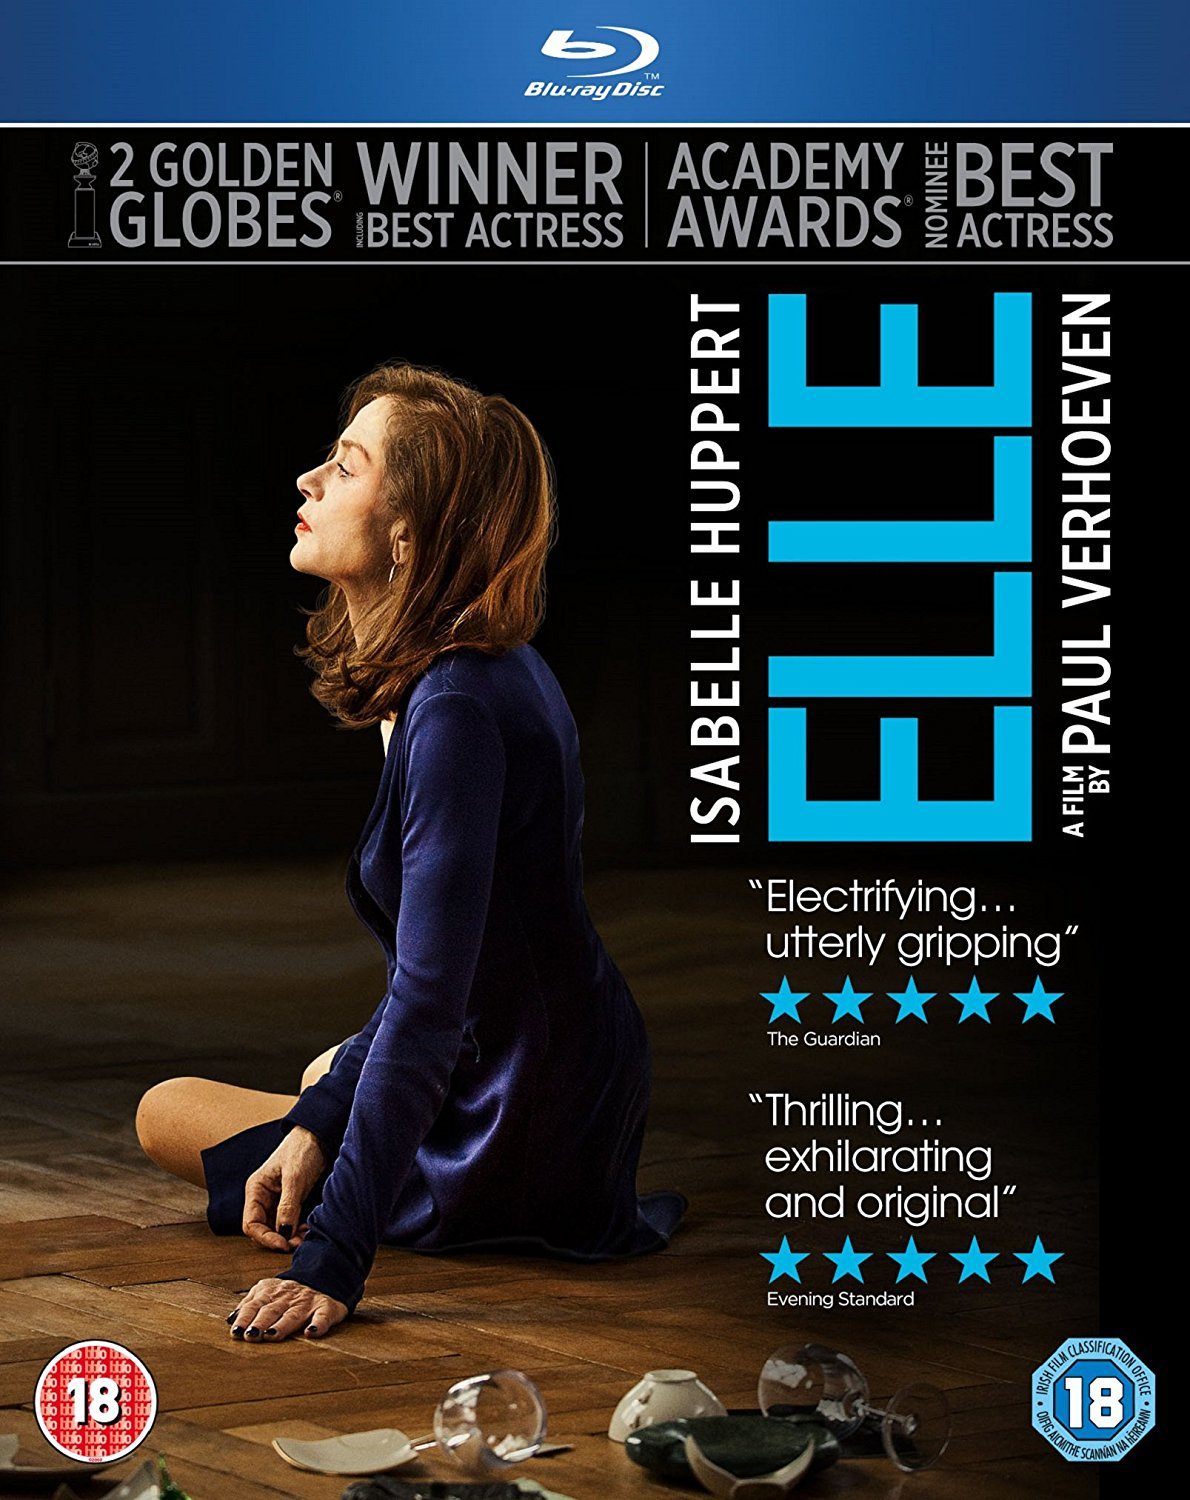 ELLE – Digital Download, DVD and Blu-ray release dates announced